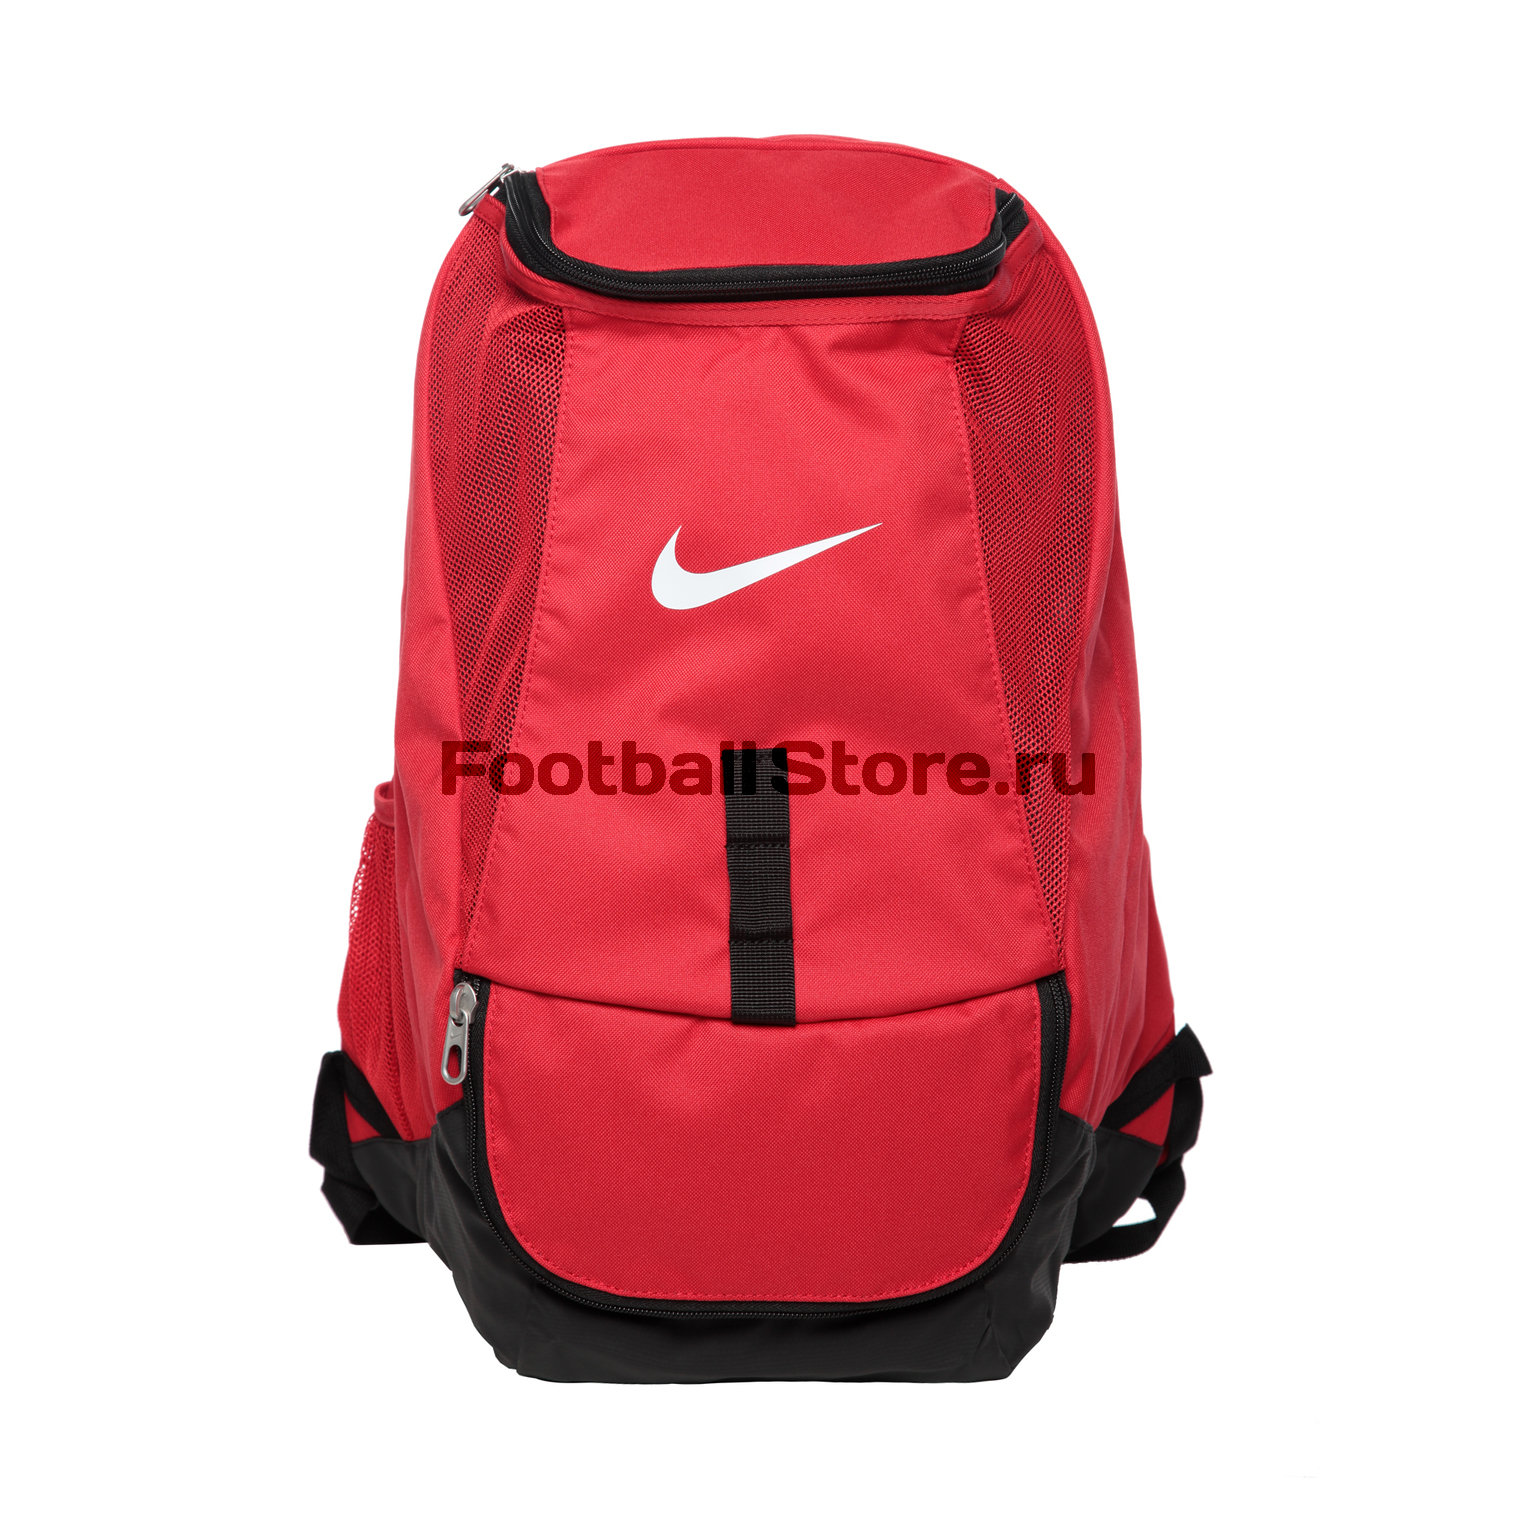 Сумки/Рюкзаки Nike Рюкзак Nike Club Team Swoosh BackPack BA5190-657